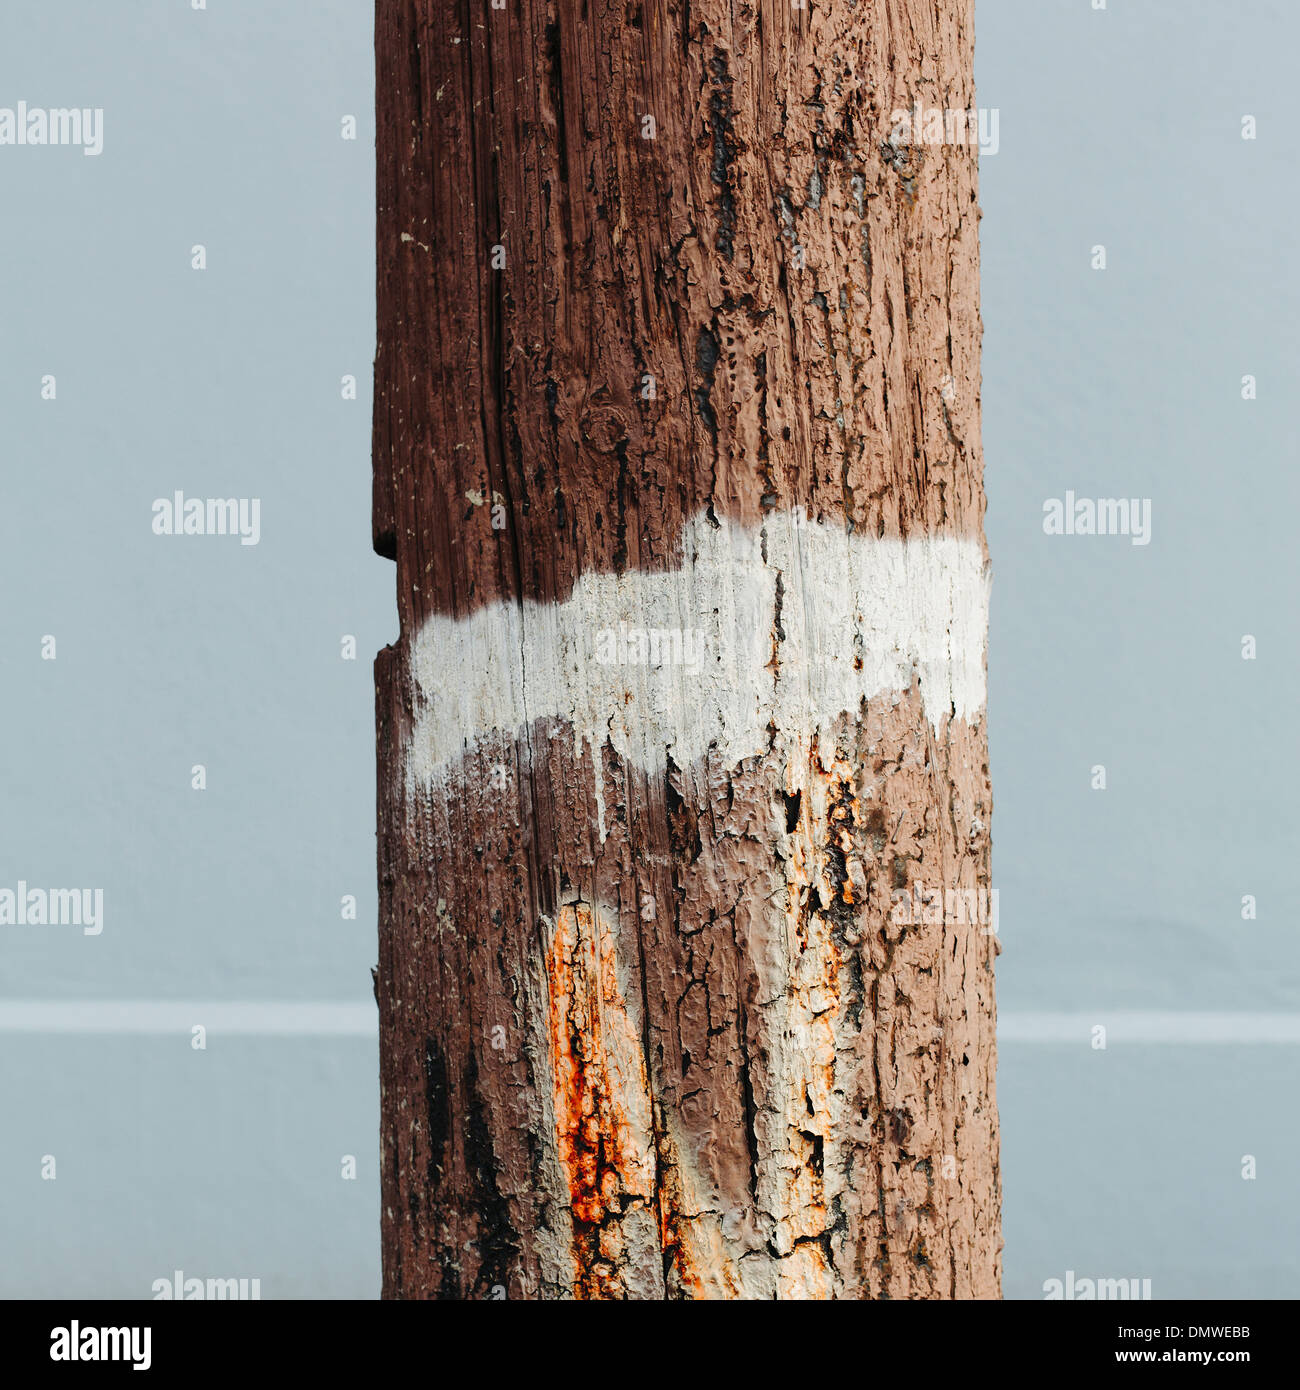 An old cracked and worn wooden telephone pole with a white painted strip around it. Stock Photo